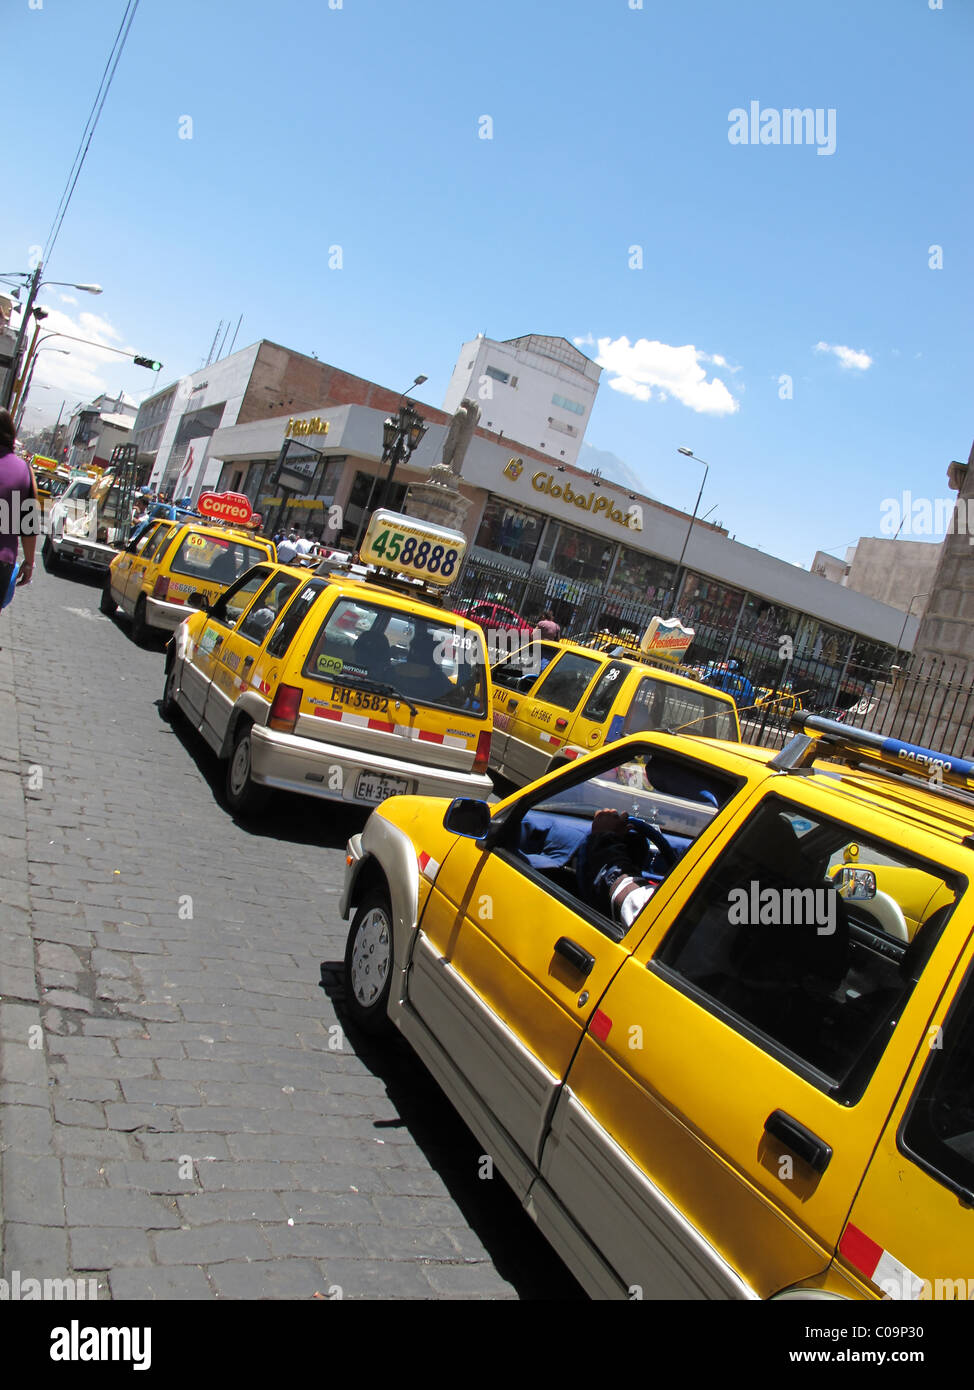 Taxis, Arequipa, Peru - Stock Image